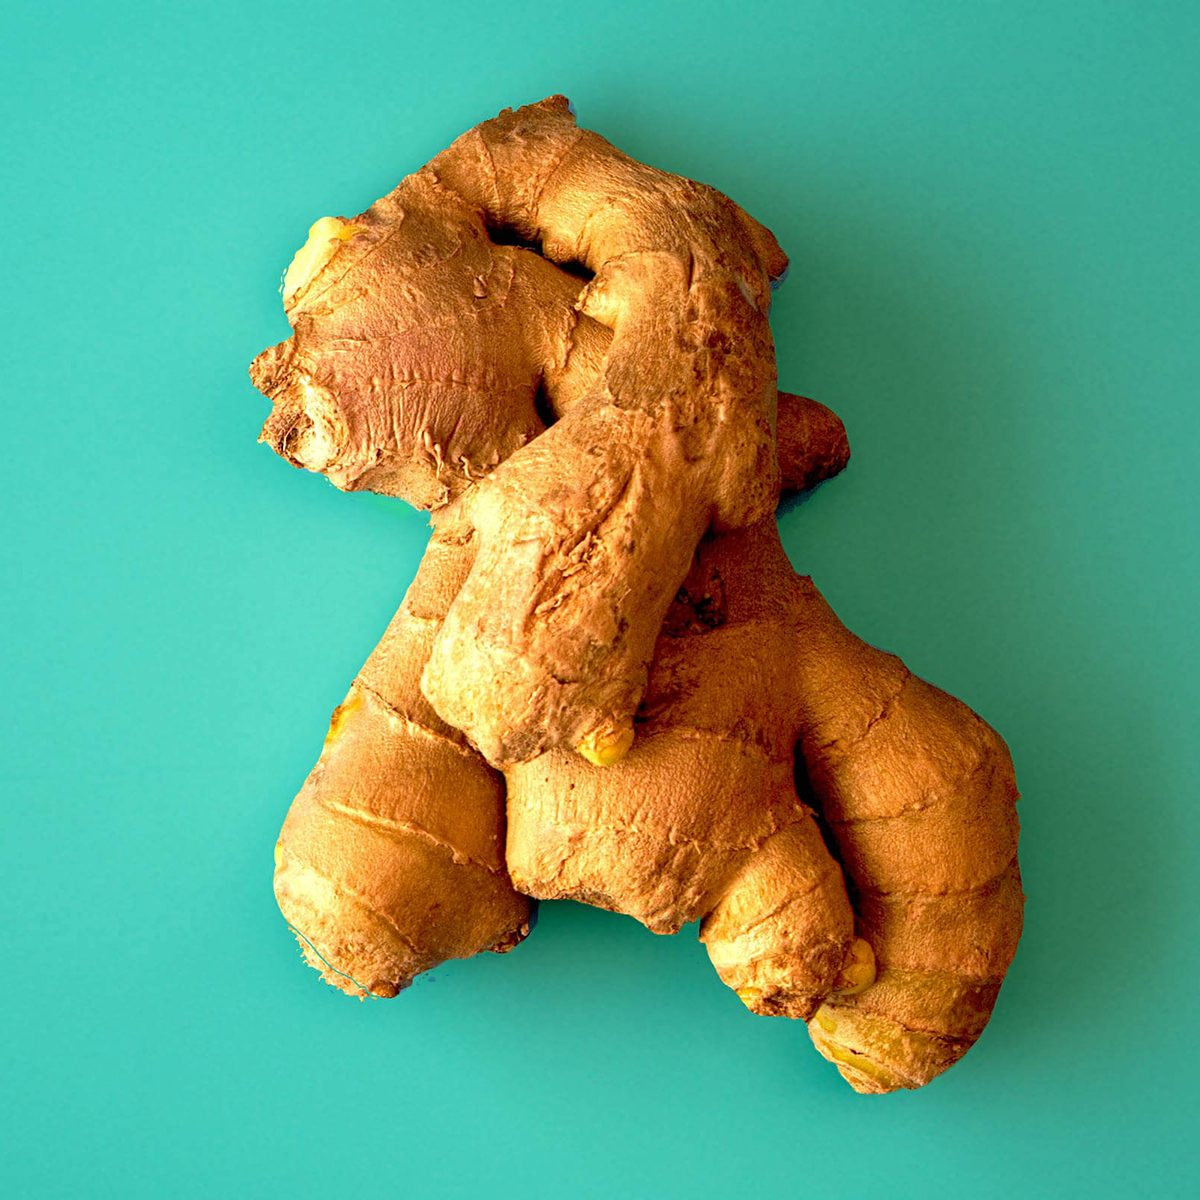 Raw ginger root in blue background.